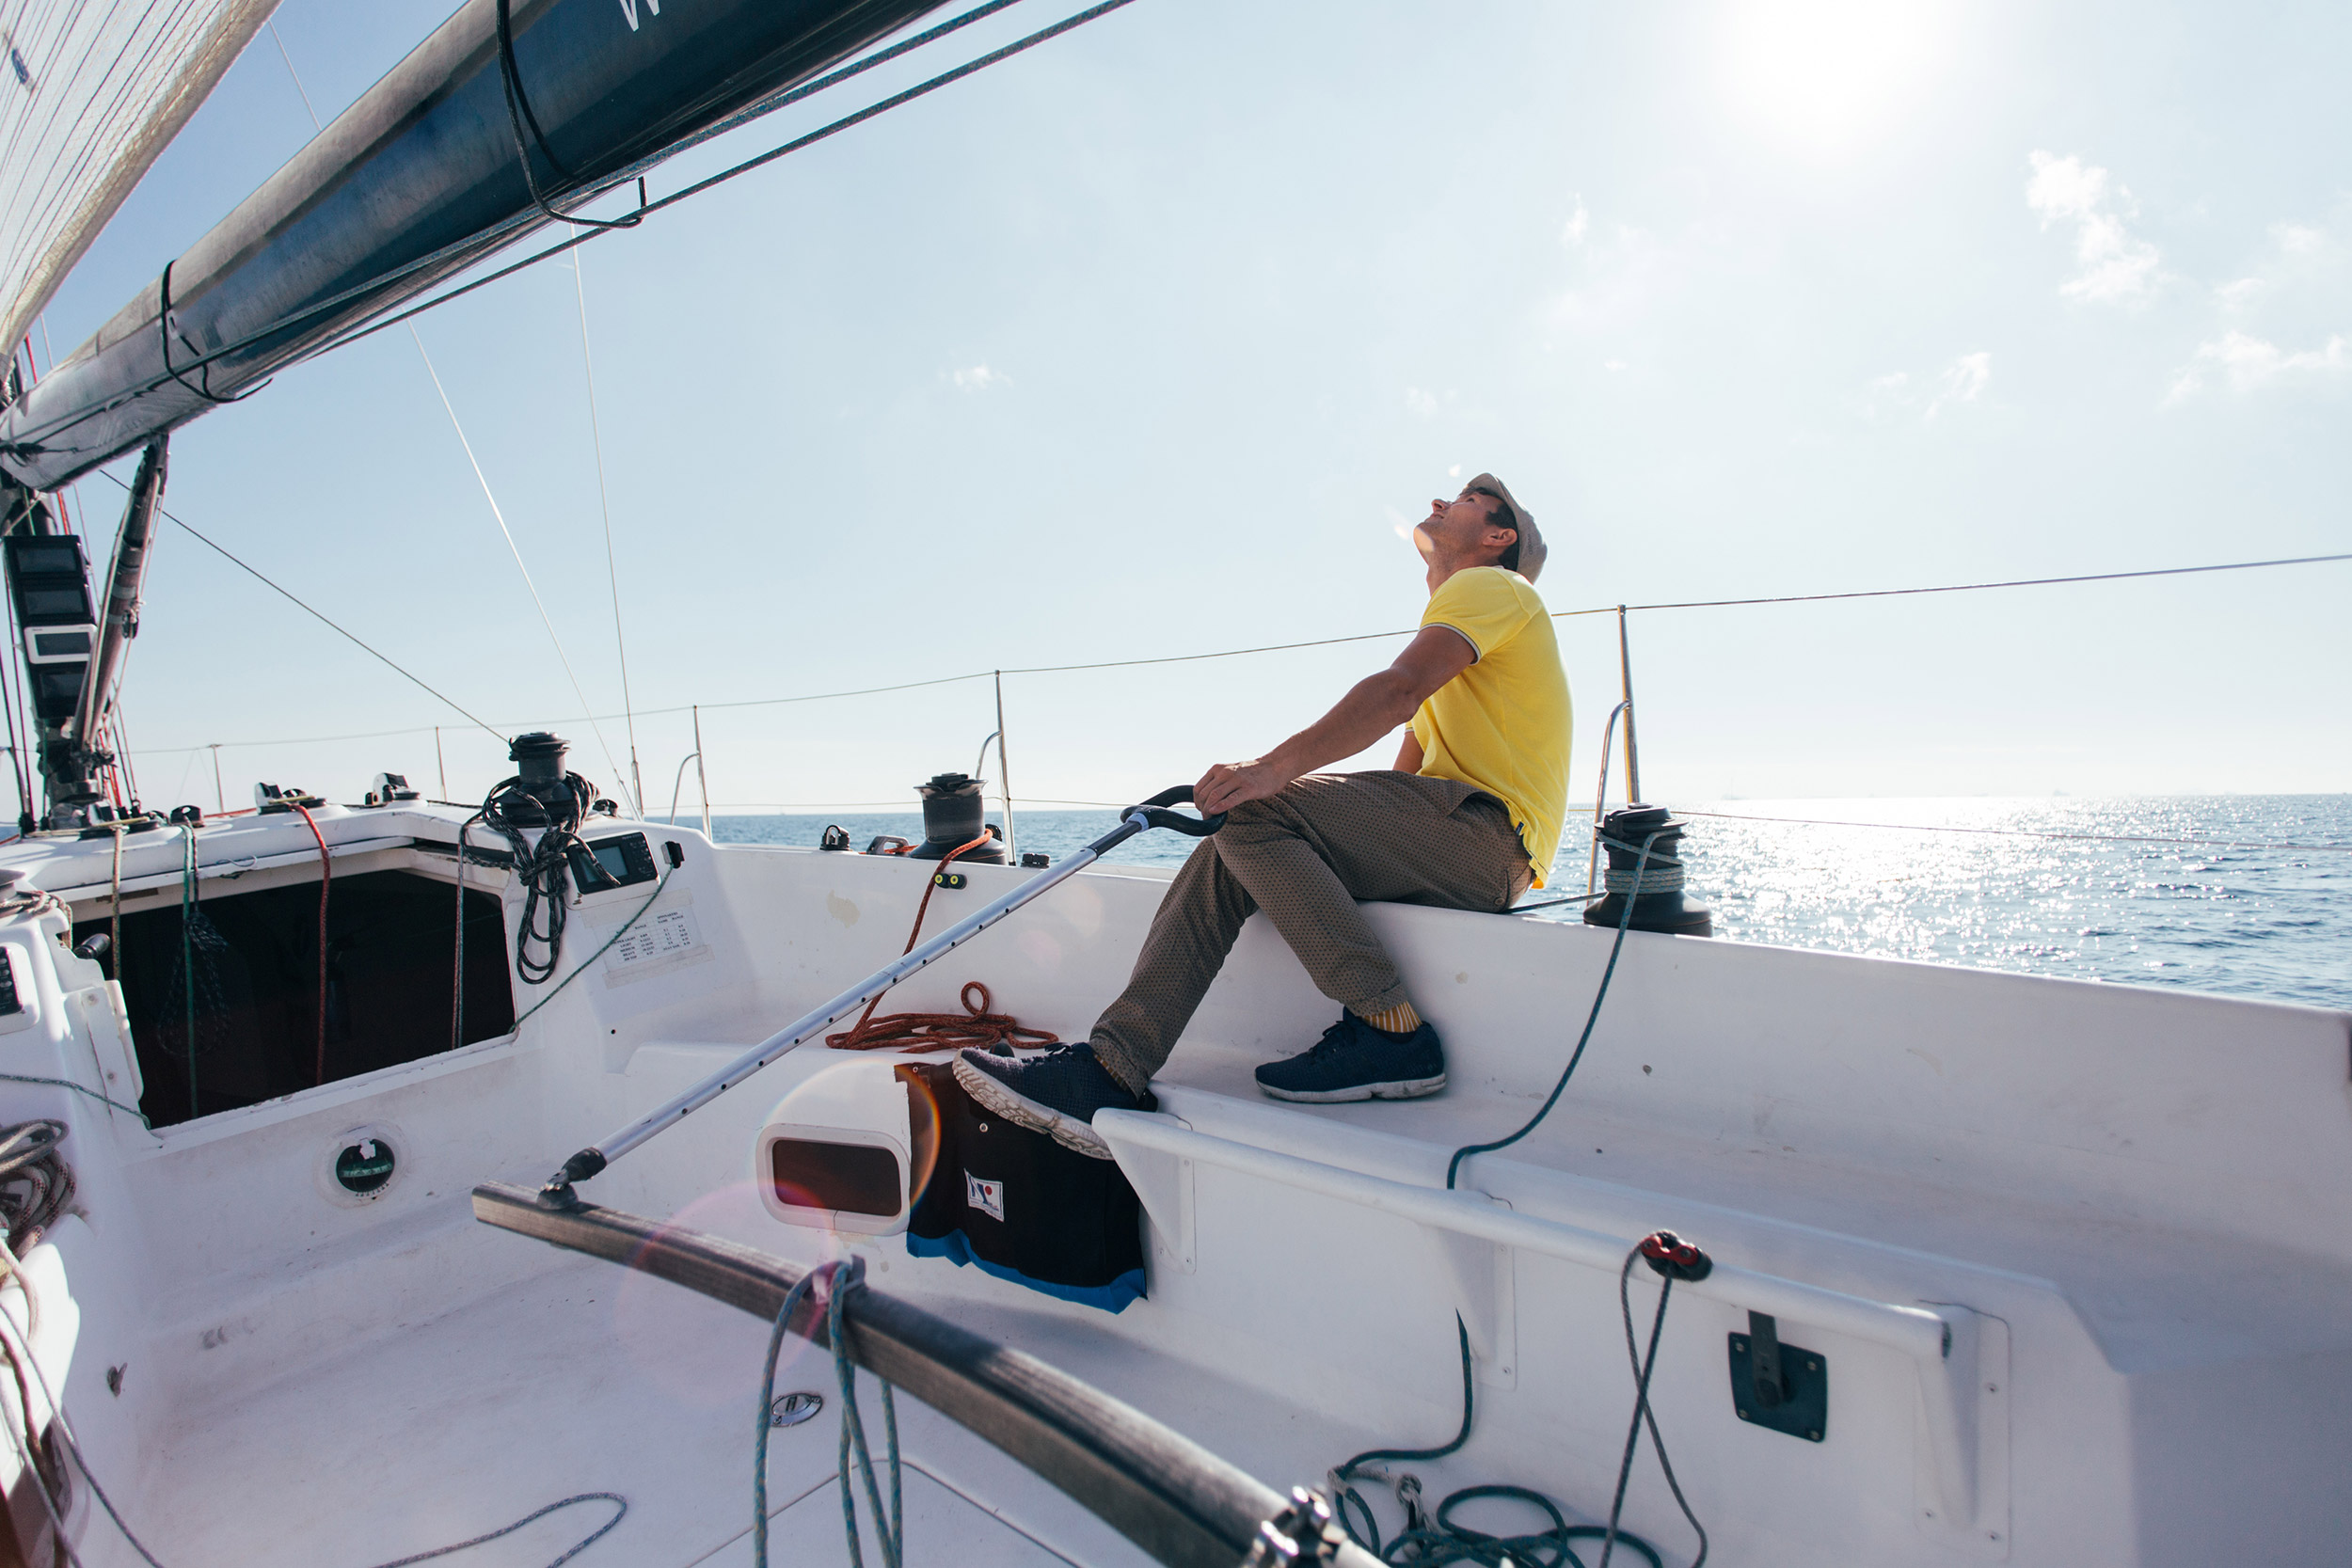 	A man sitting on a sailboat and looking up at the sky